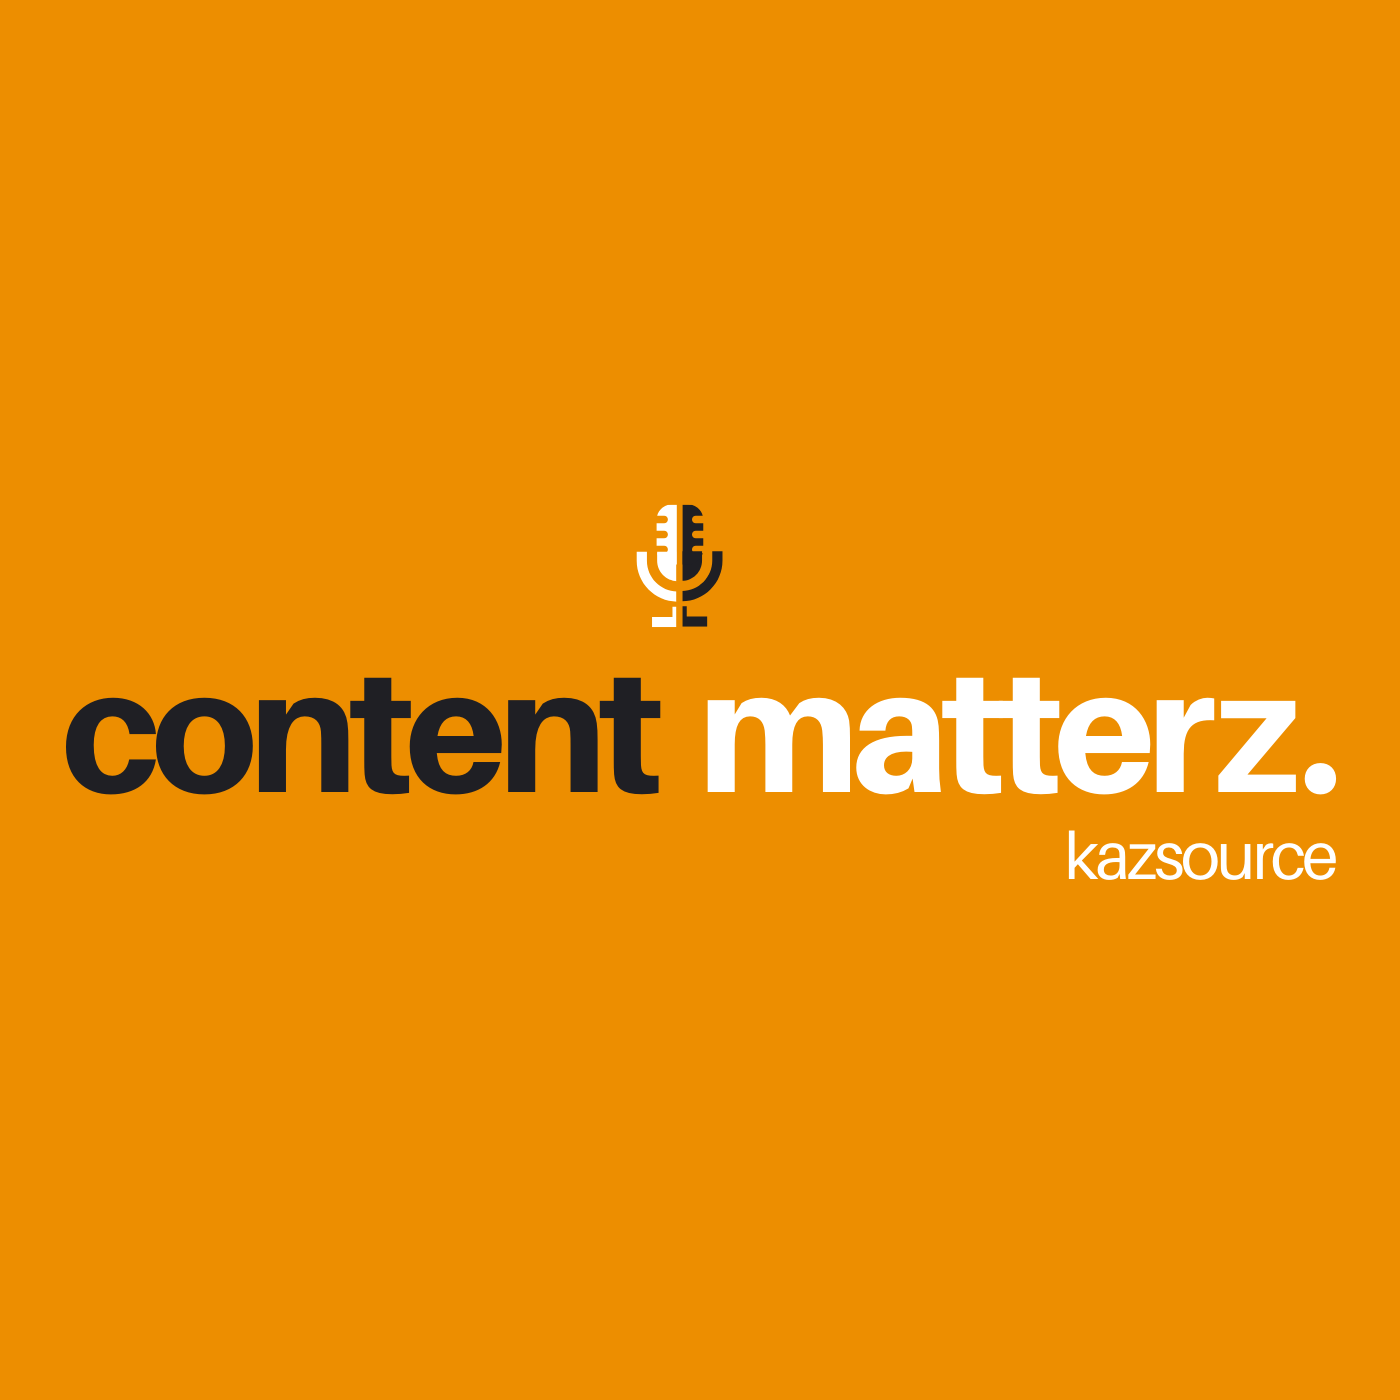 Bonding and Rapport through Content Marketing